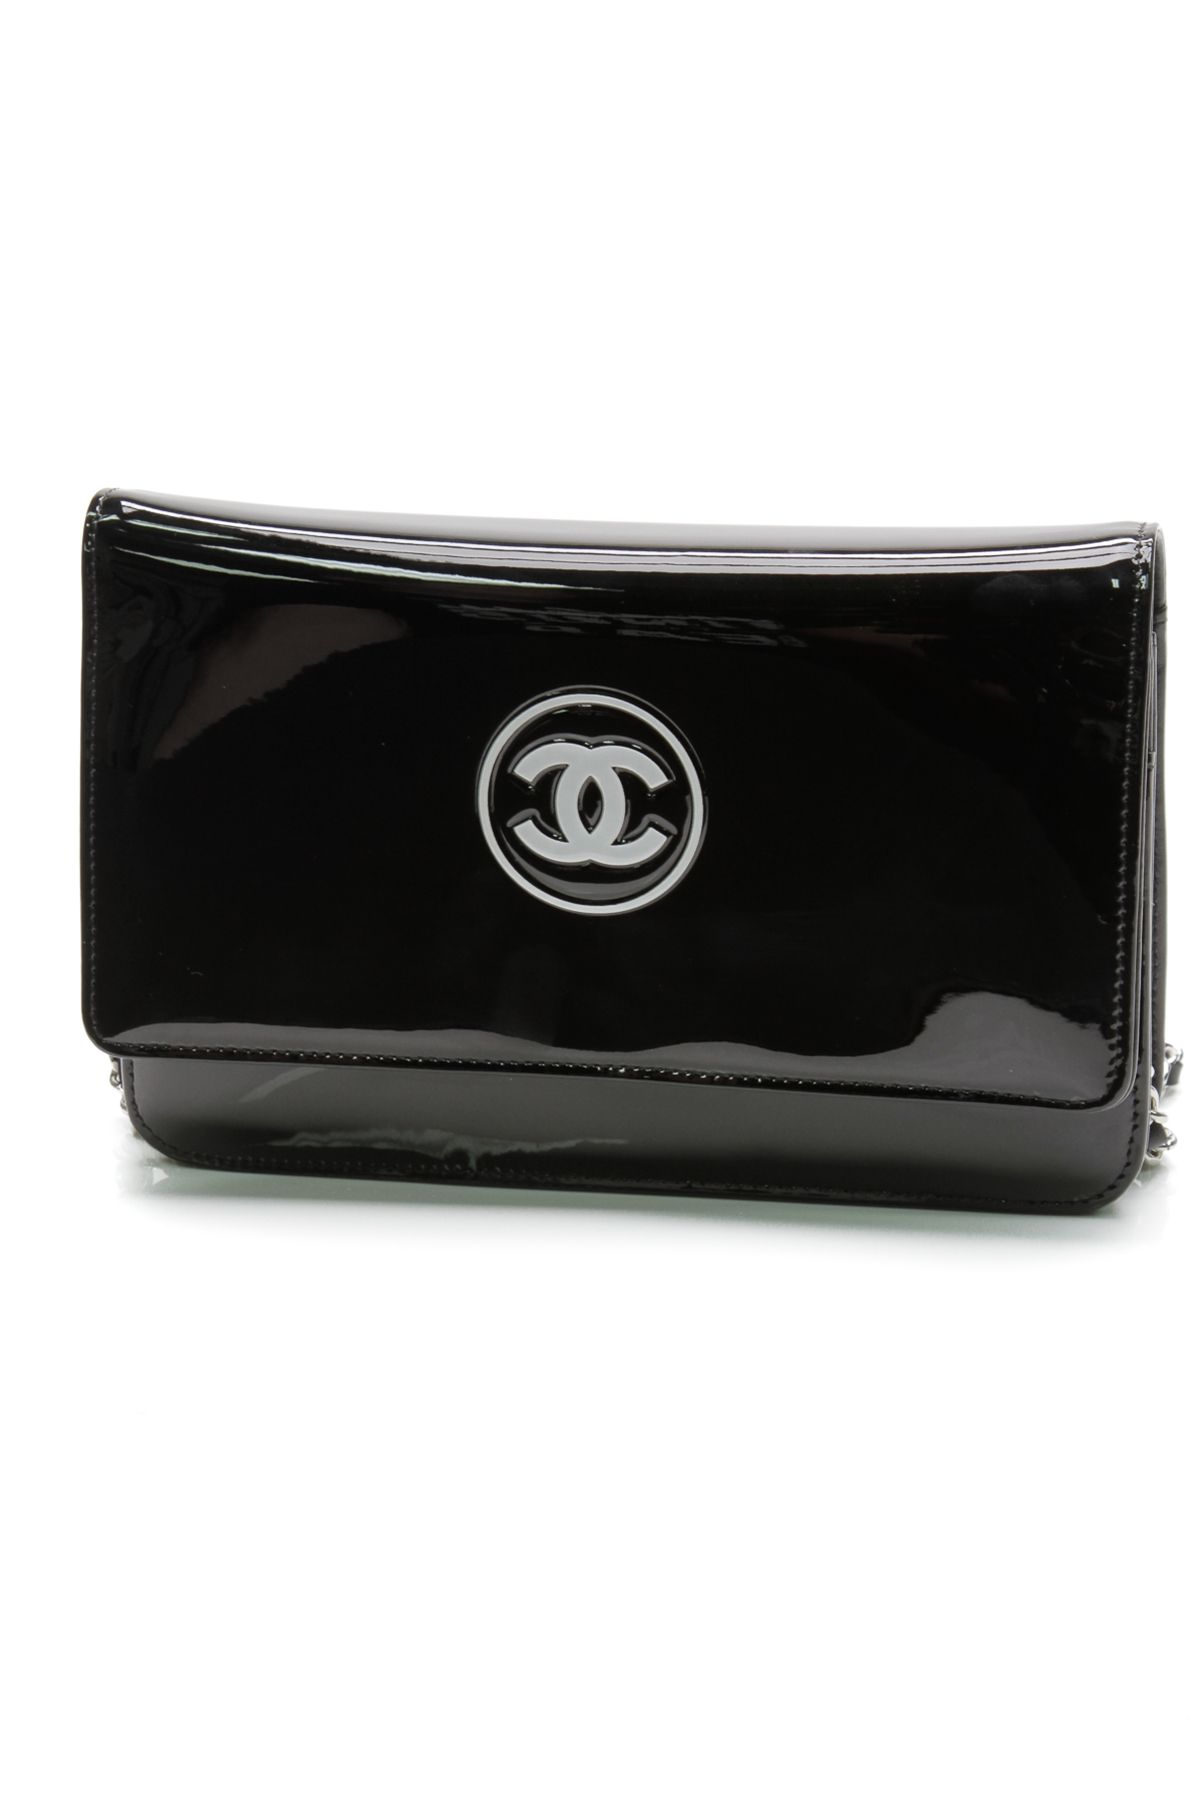 Chanel Black Patent Leather Signature CC Logo WOC Crossbody Bag ... 060d26e58d1a2